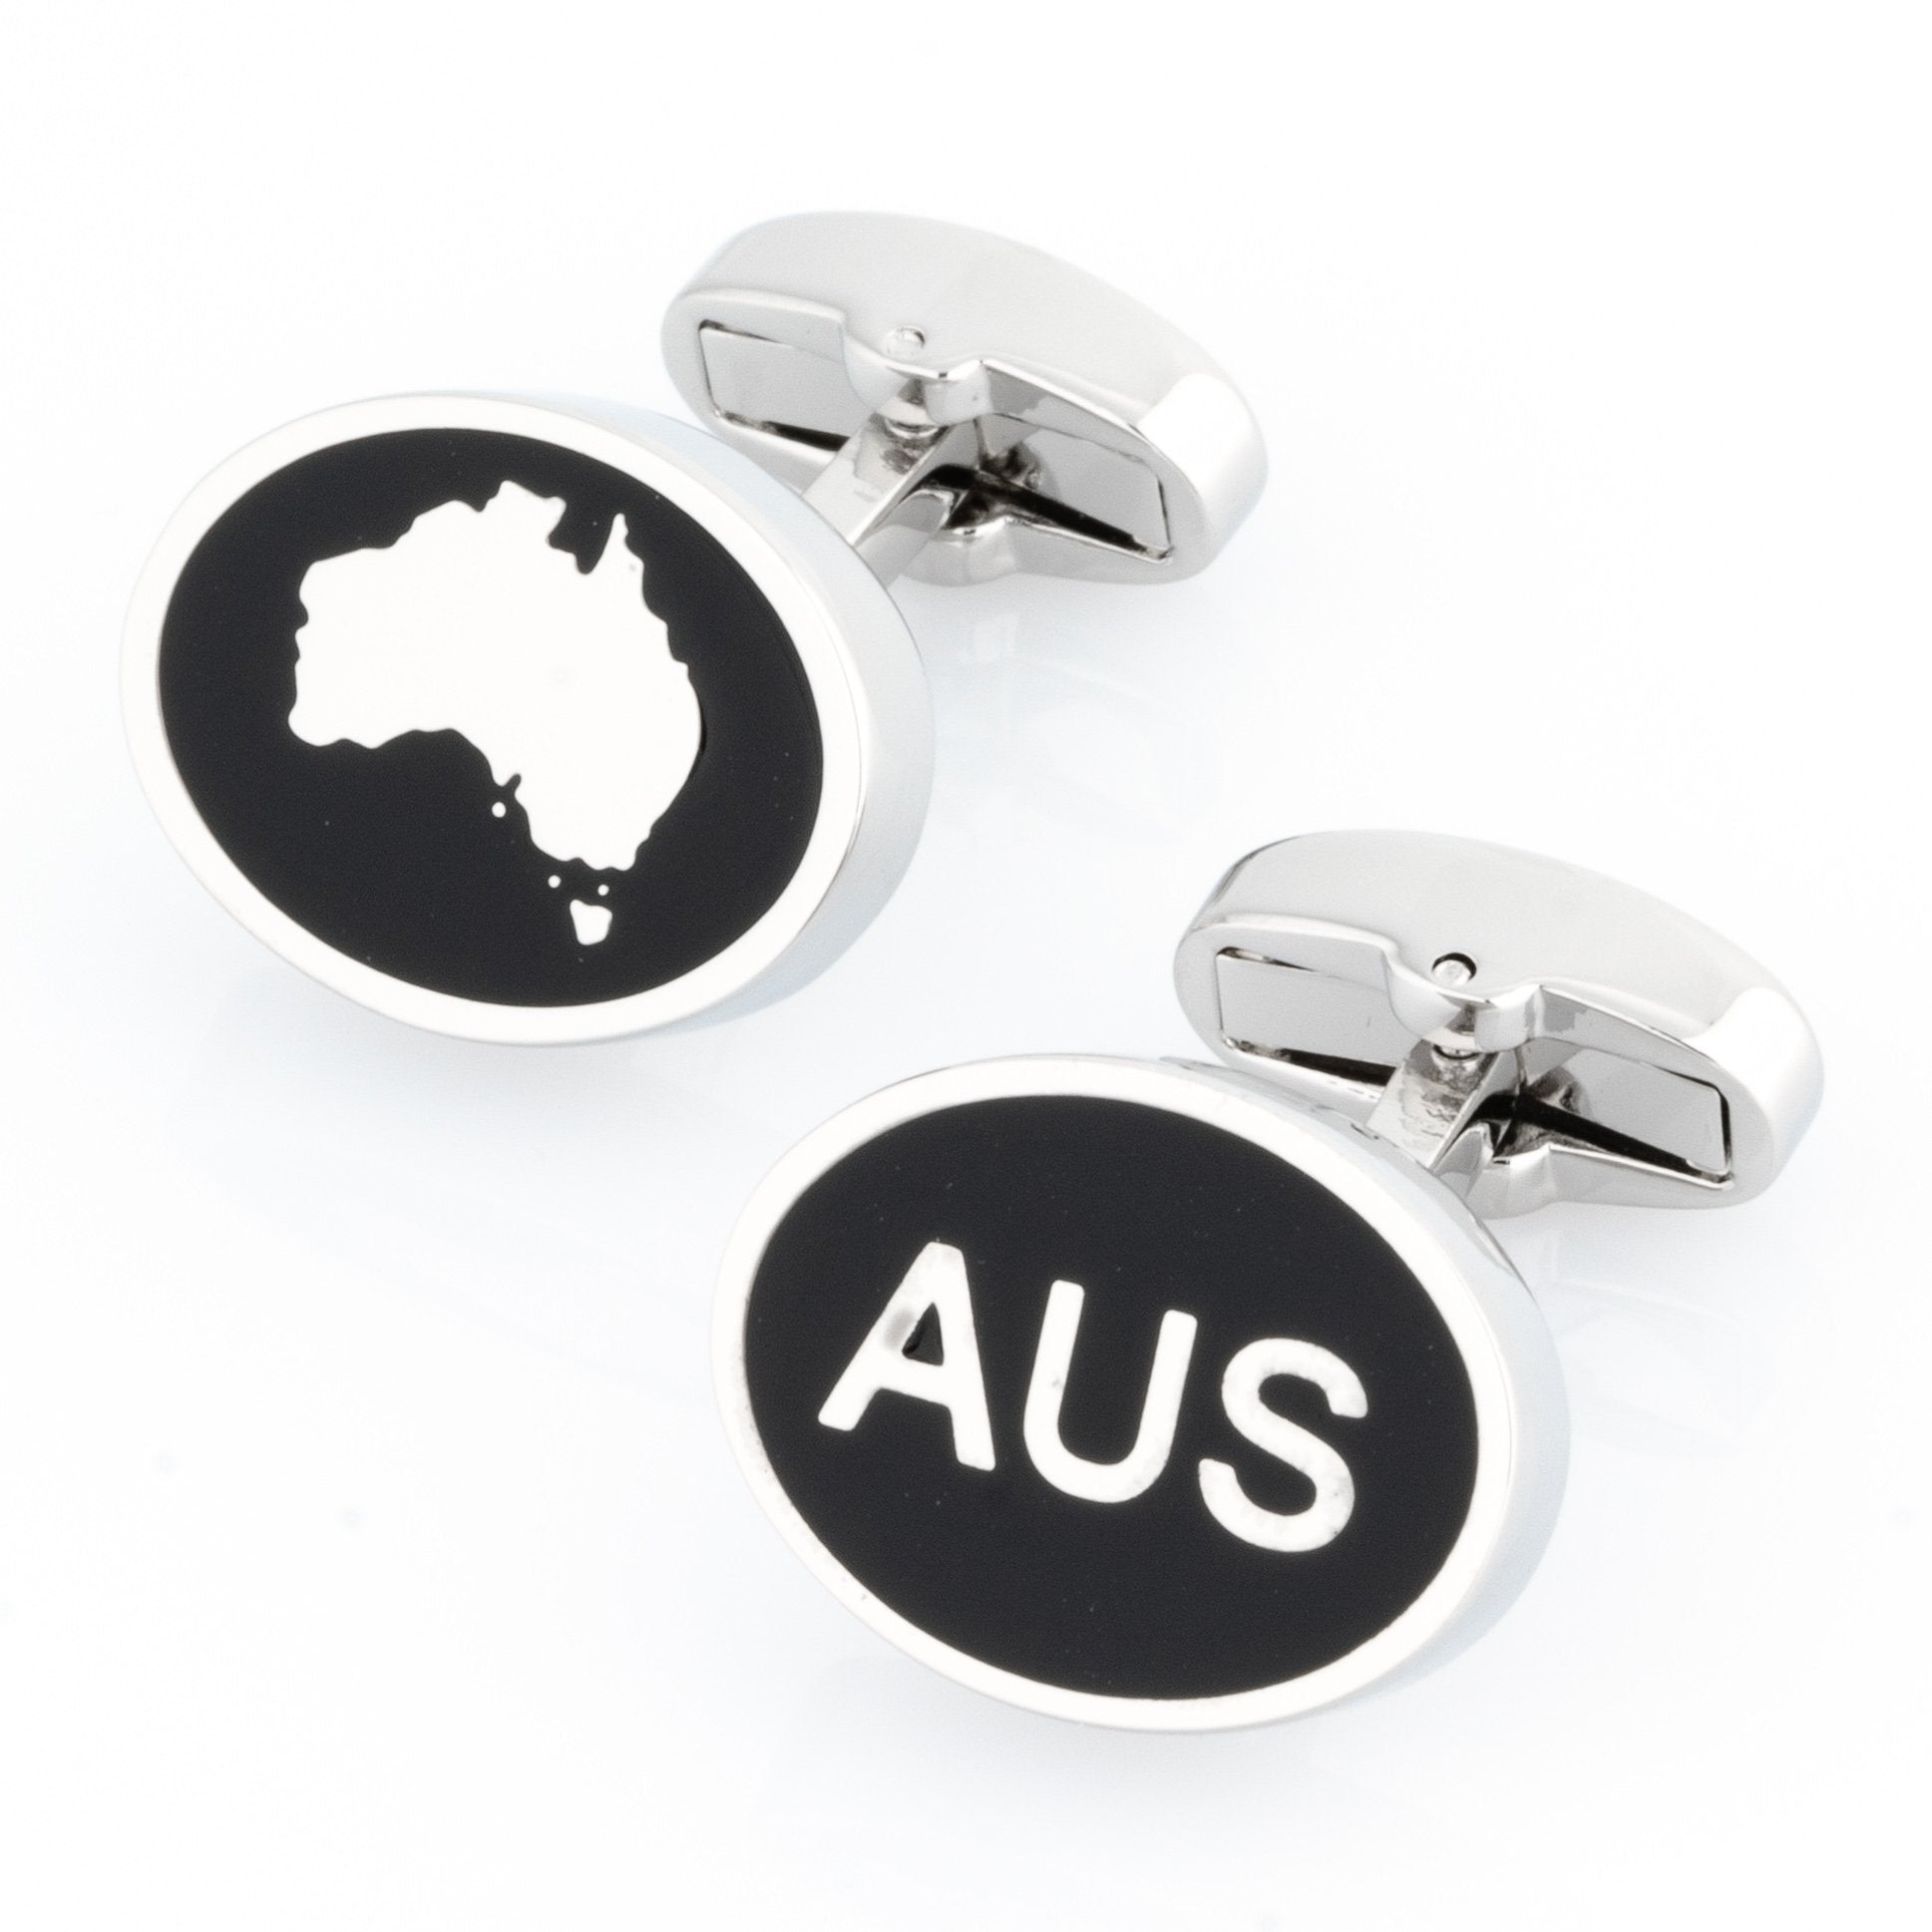 Australian Map and AUS Cufflinks , Novelty Cufflinks , CL8505 , Mens Cufflinks , Cufflinks , Cuffed , Clinks ,Clinks Australia